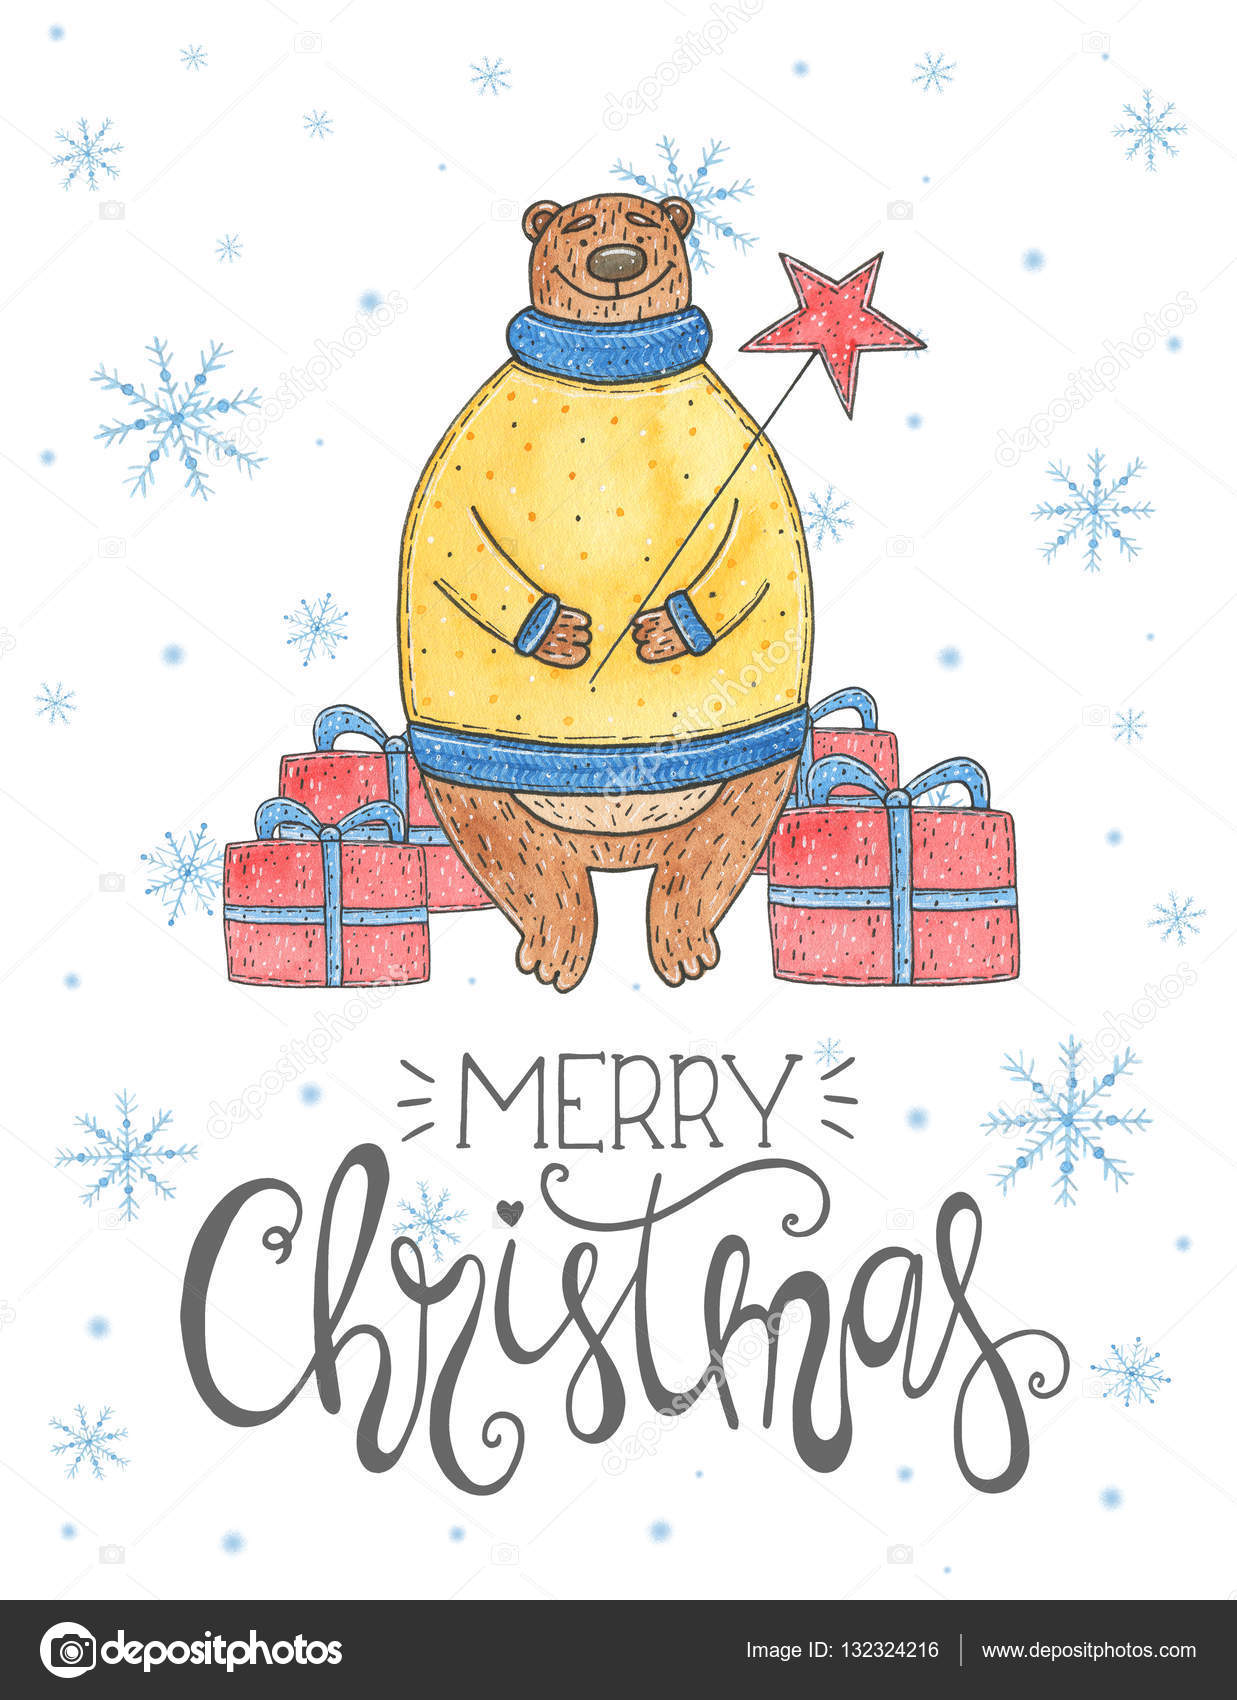 Watercolor Christmas Card With Bear And Lettering Merry Christmas